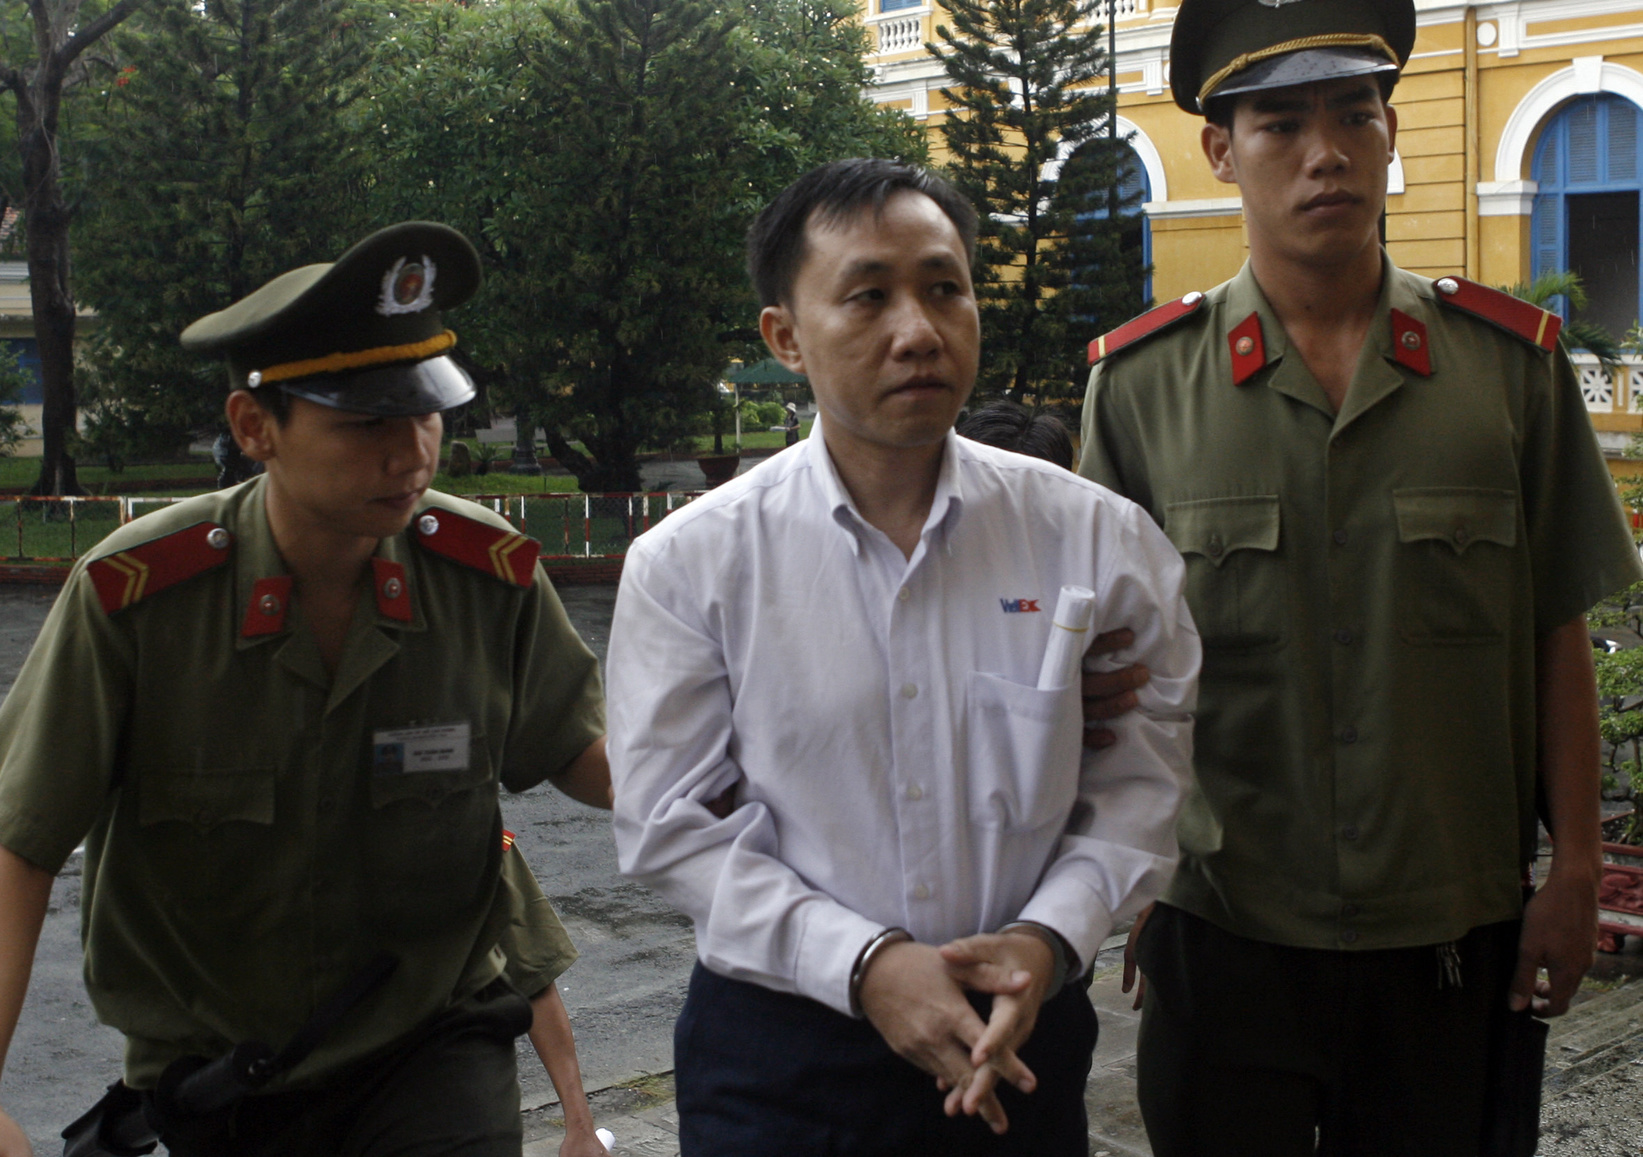 Recognising the remarkable: A call for the release of Nguyen Bac Truyen